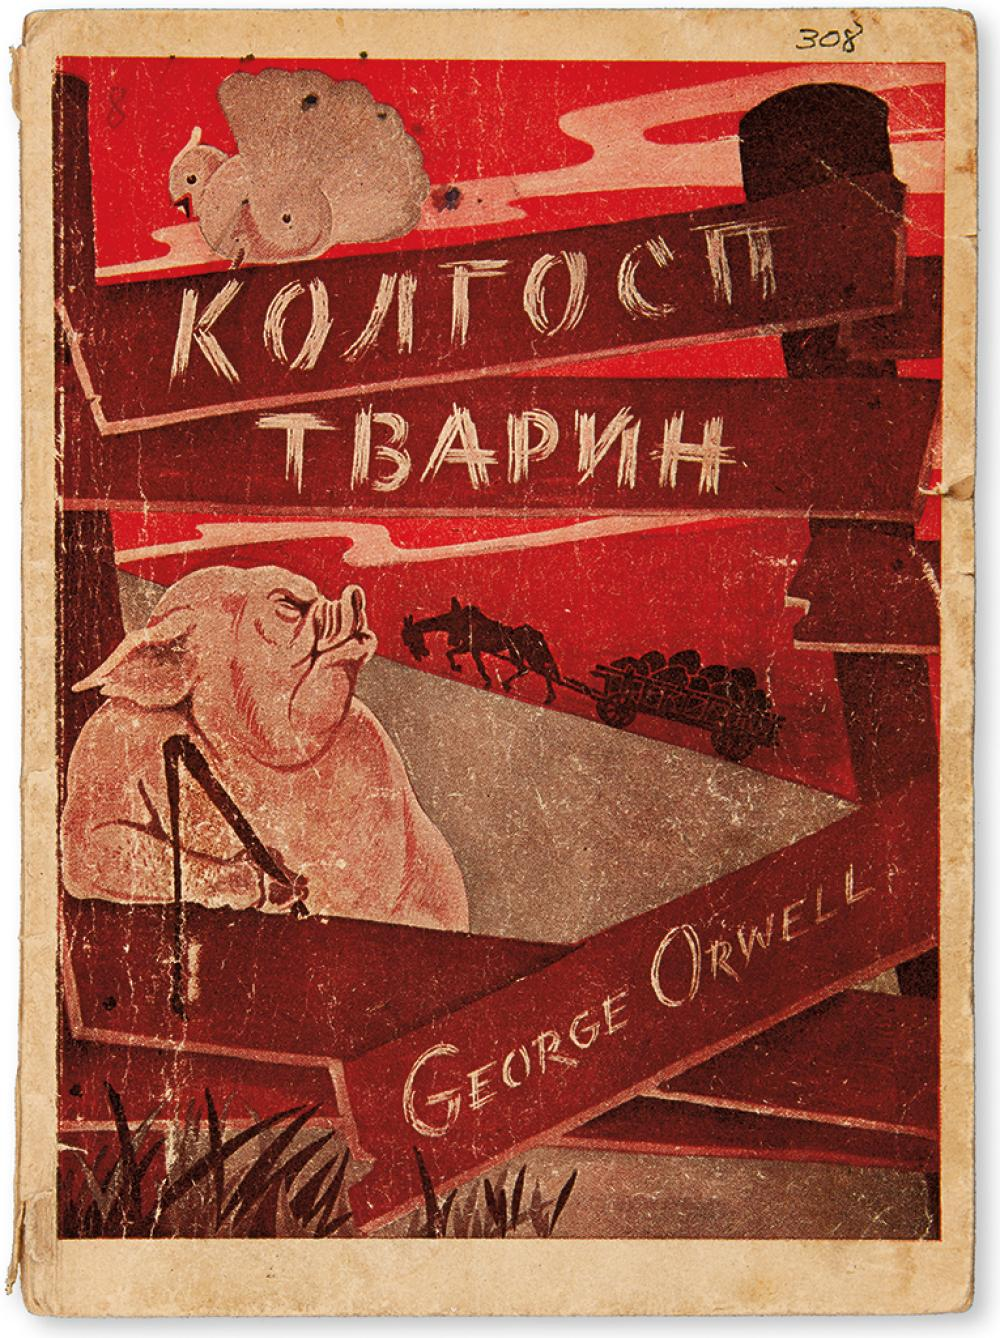 ORWELL, GEORGE. Kolgosp Tvarin [Animal Farm].